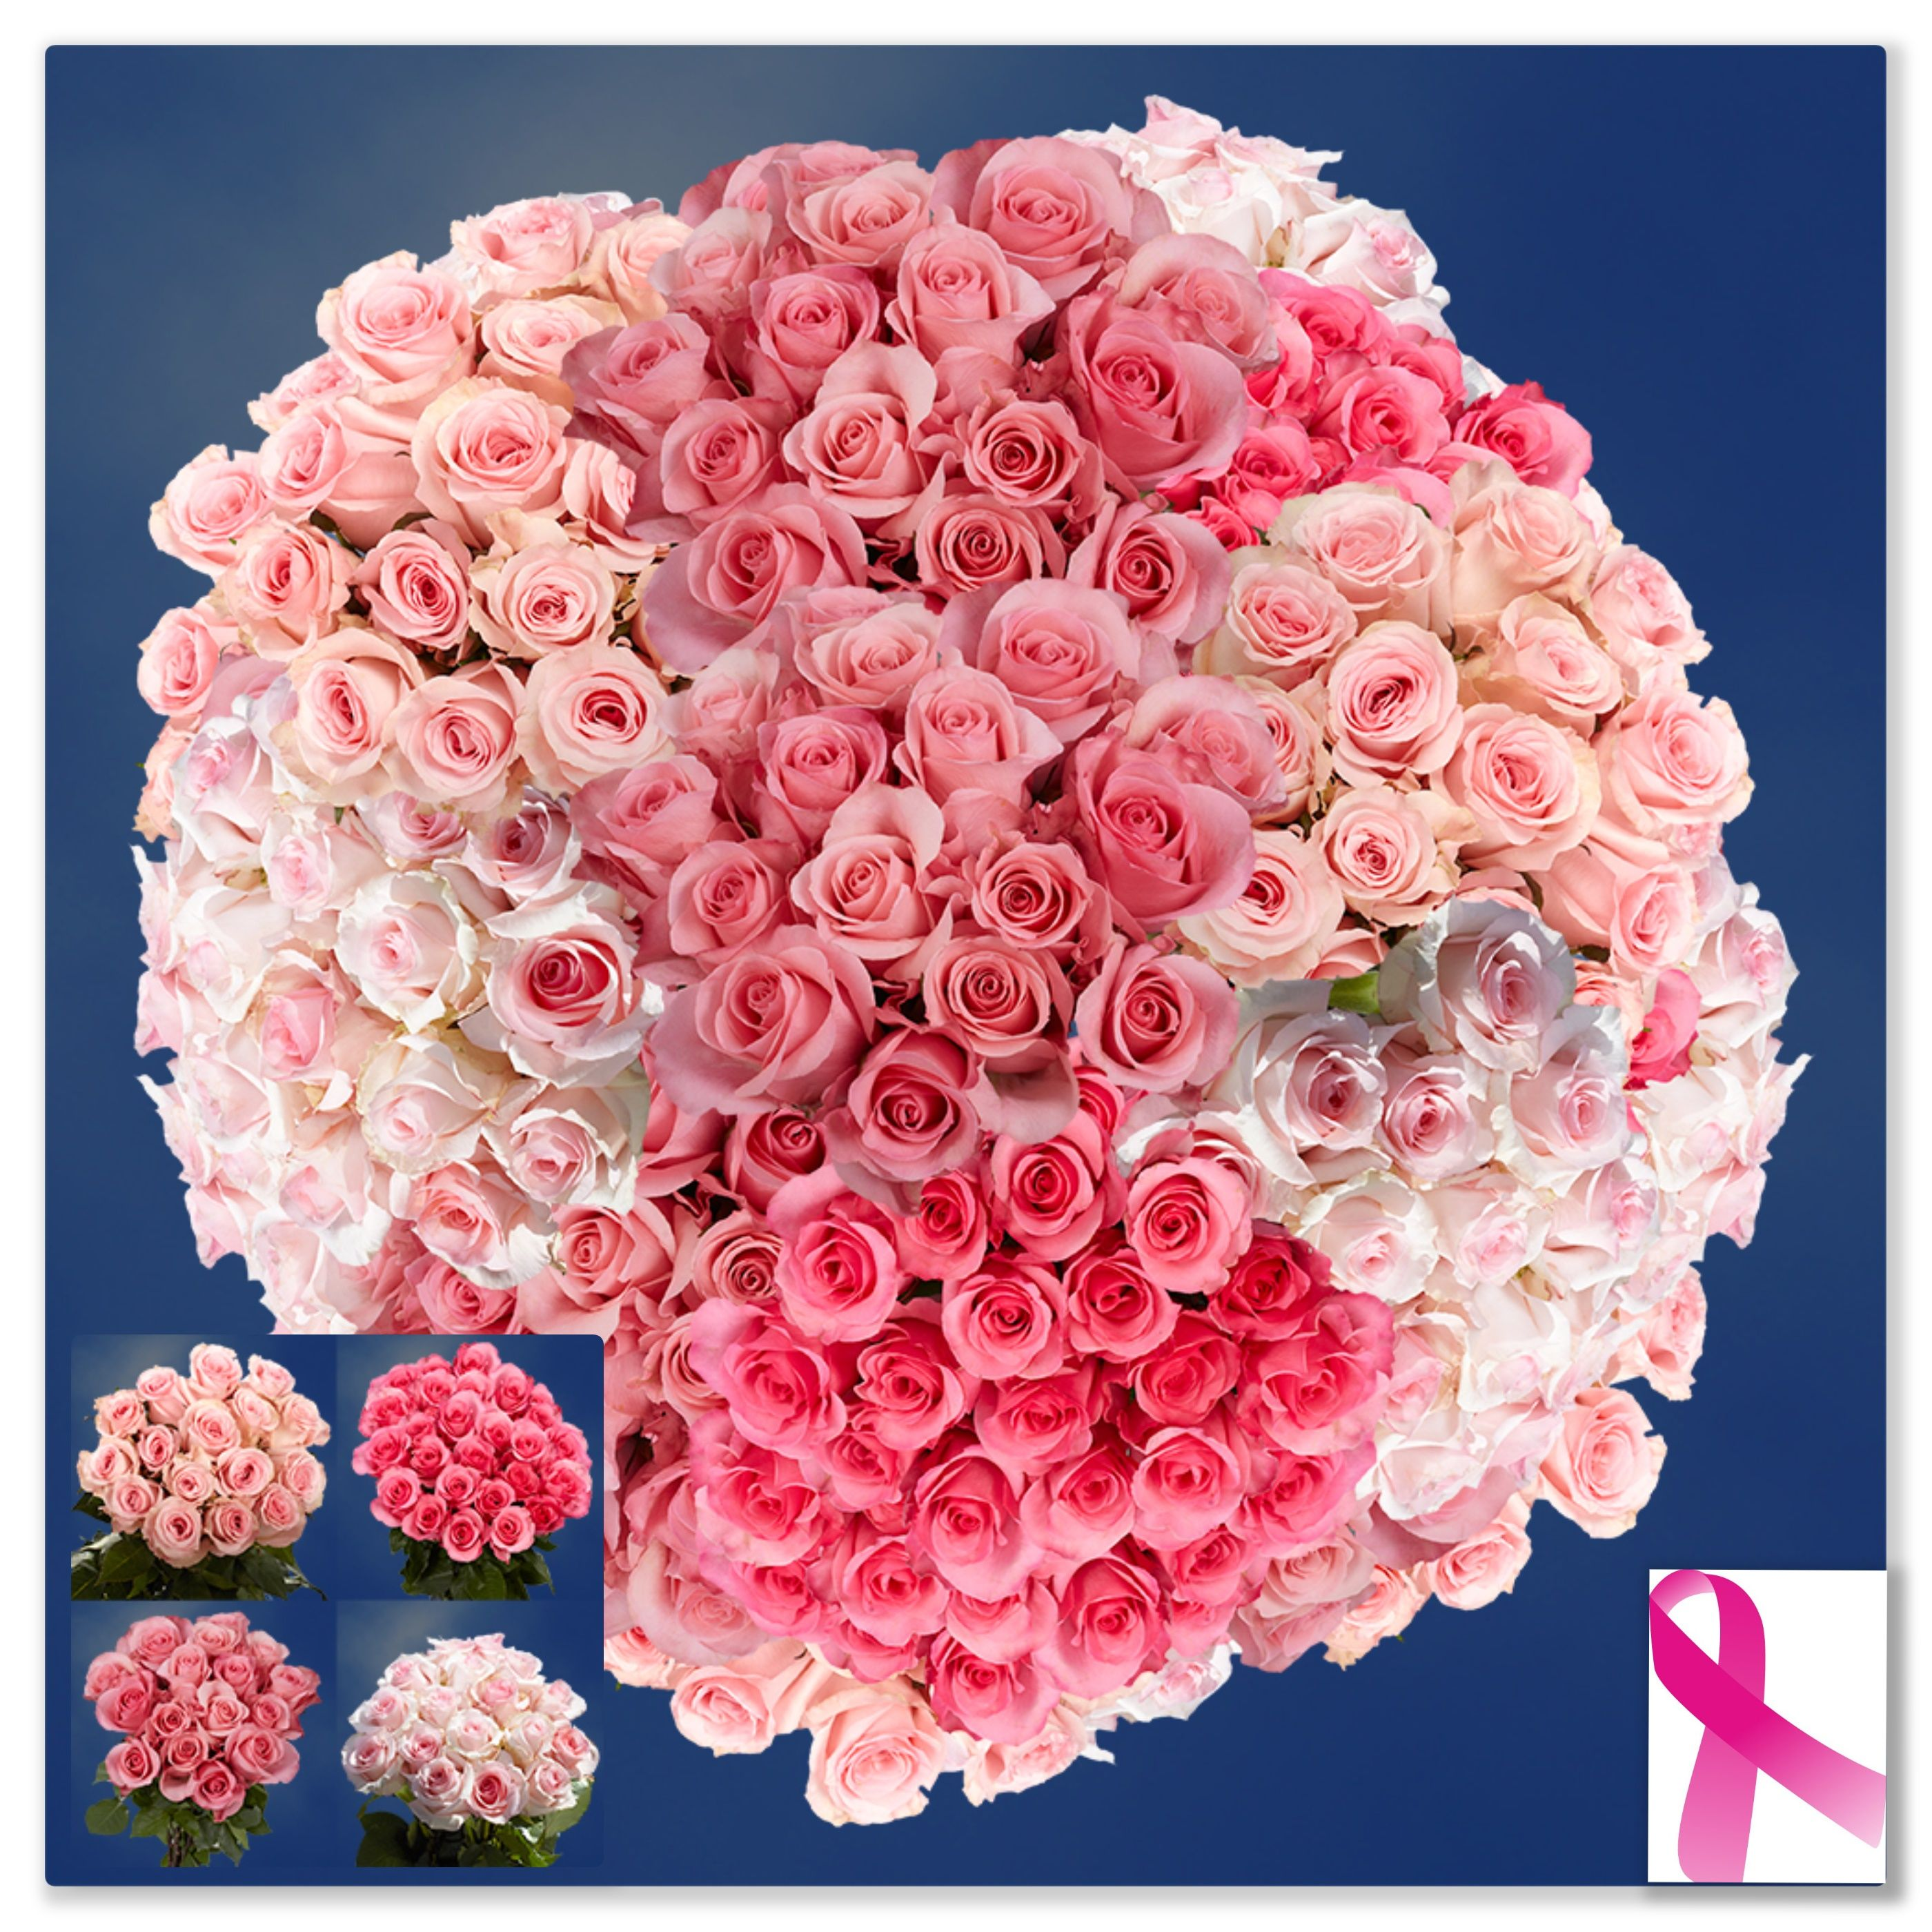 Sending cheap flowers online fall flowers pinterest pink roses support the breast cancer fighters and help spread awareness use code bca for 10 off on all pink roses carnations or bouquets izmirmasajfo